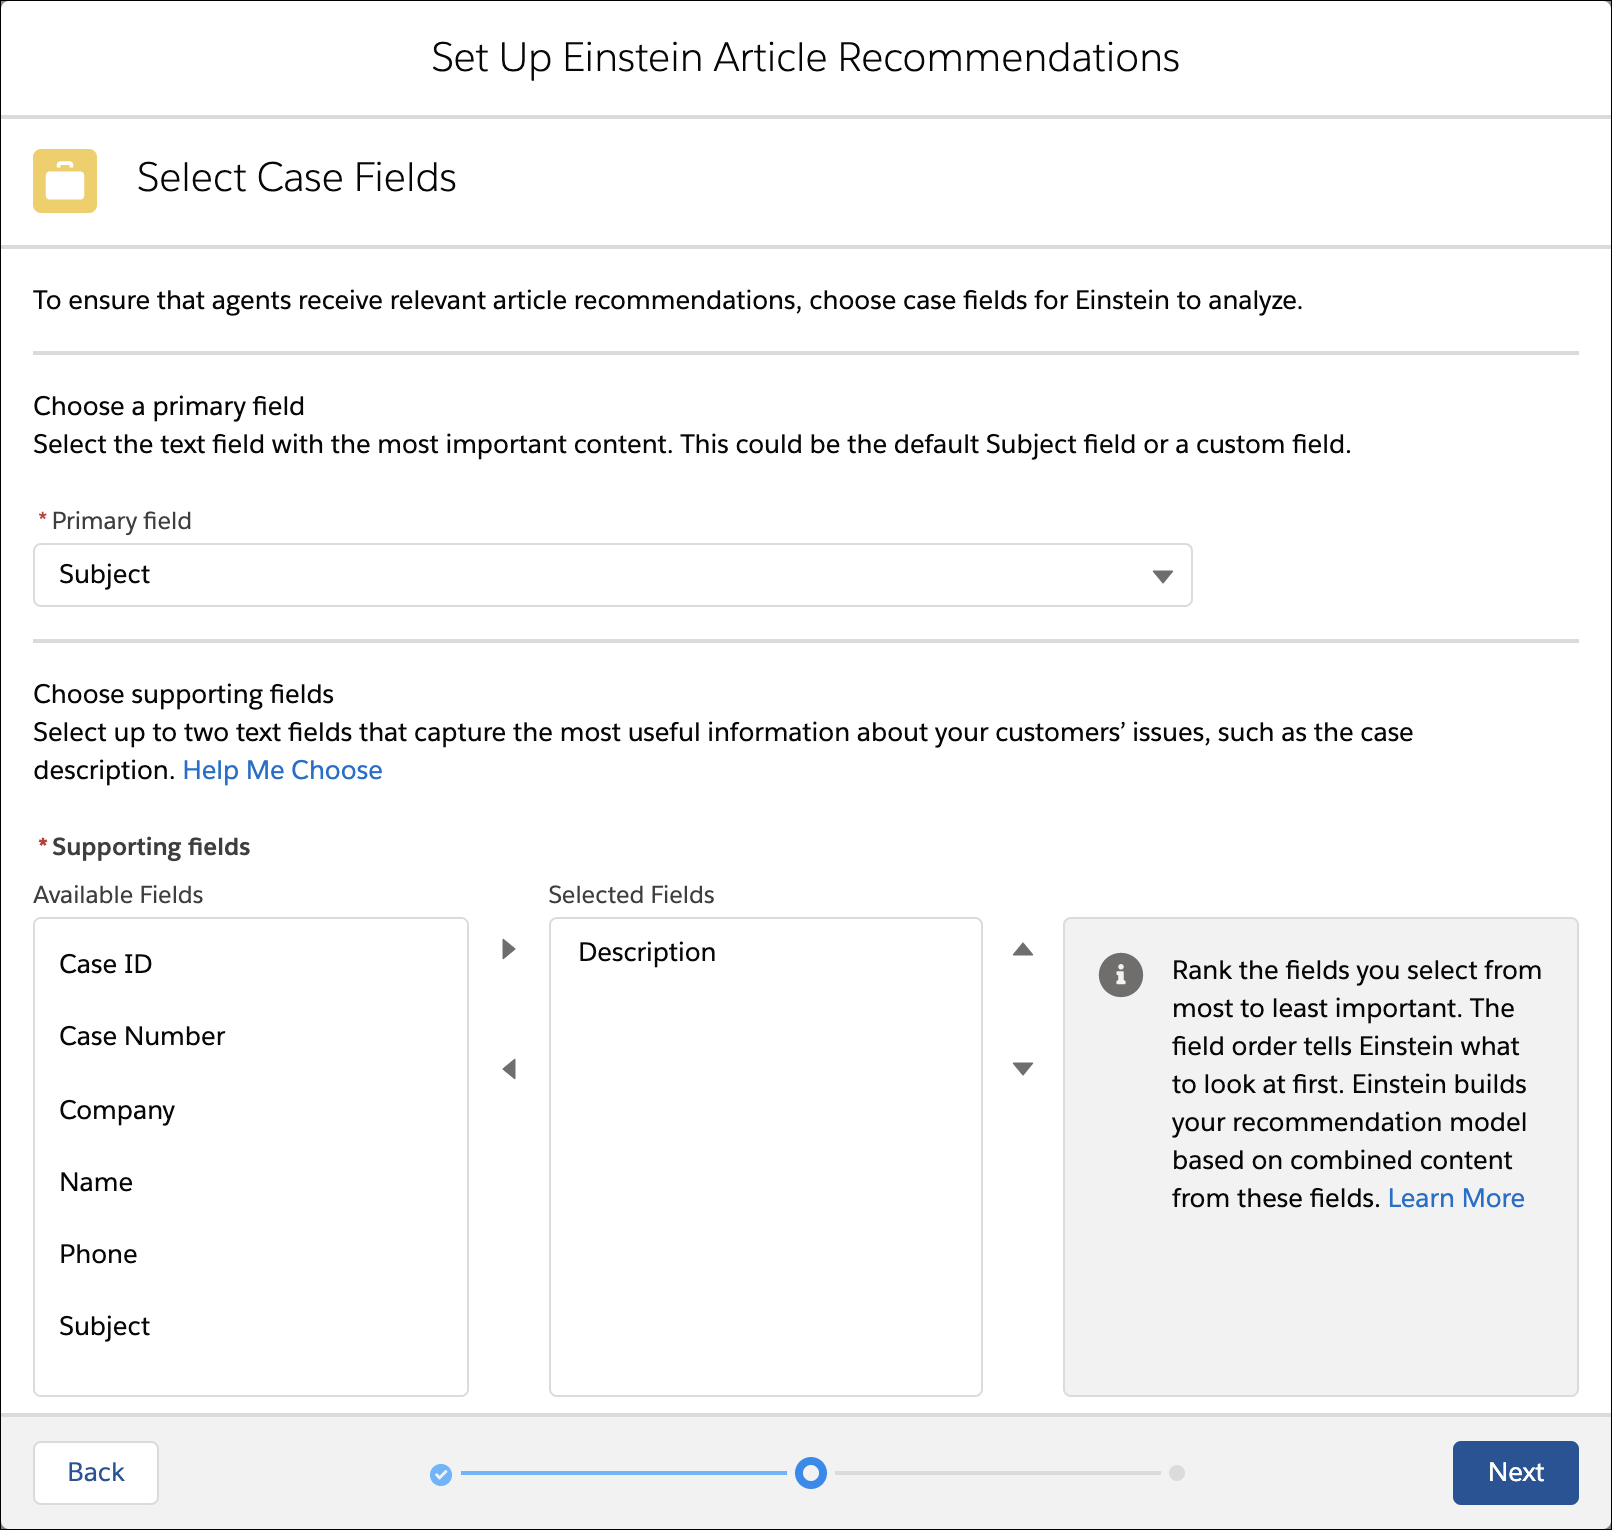 Einstein Article Recommendations select case fields screen with Internal Comments and Description as the selected fields.